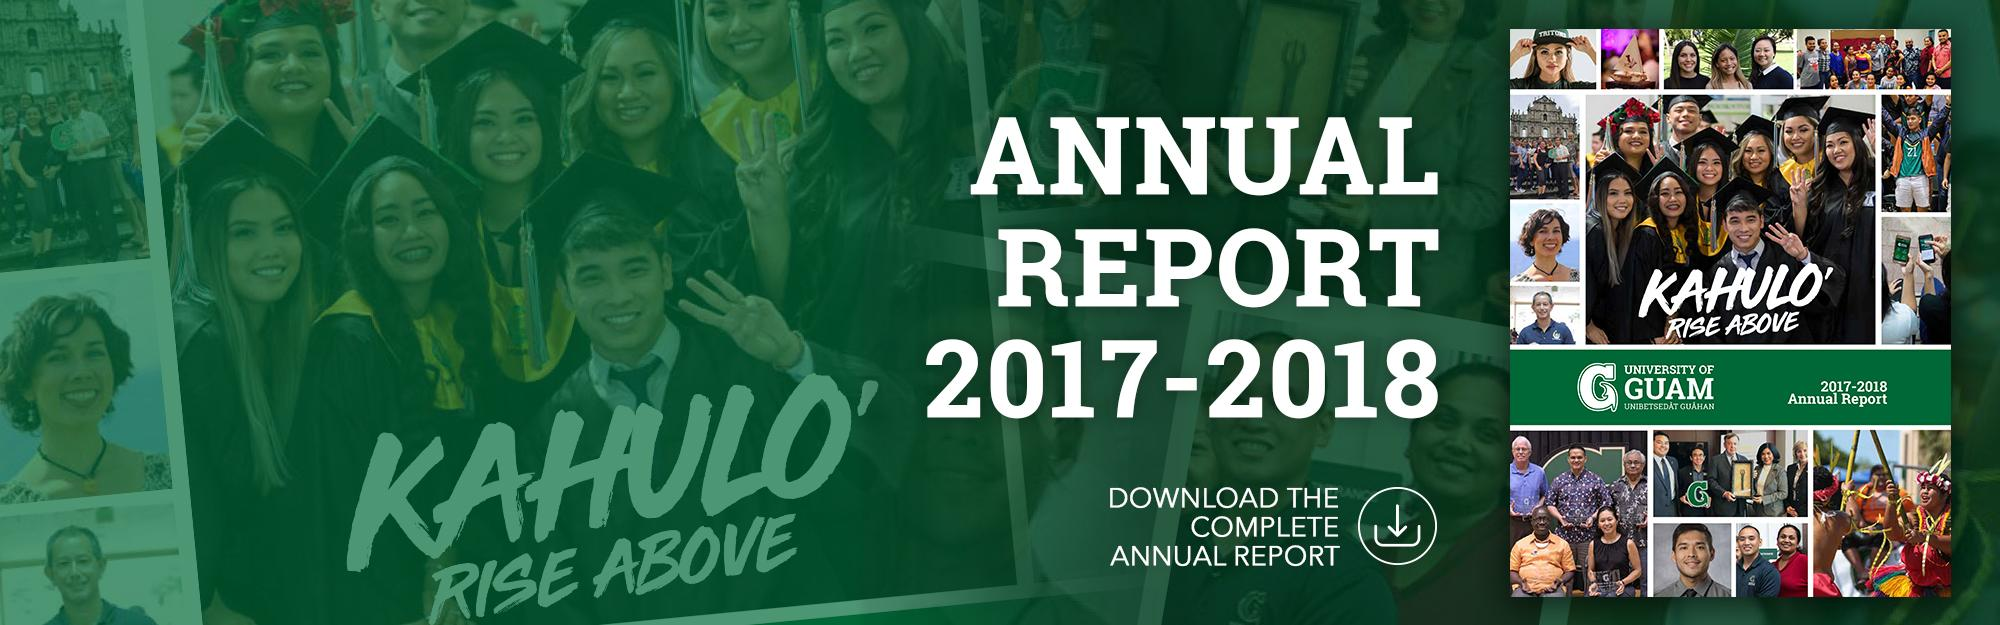 Download the Annual Report 2017-2018